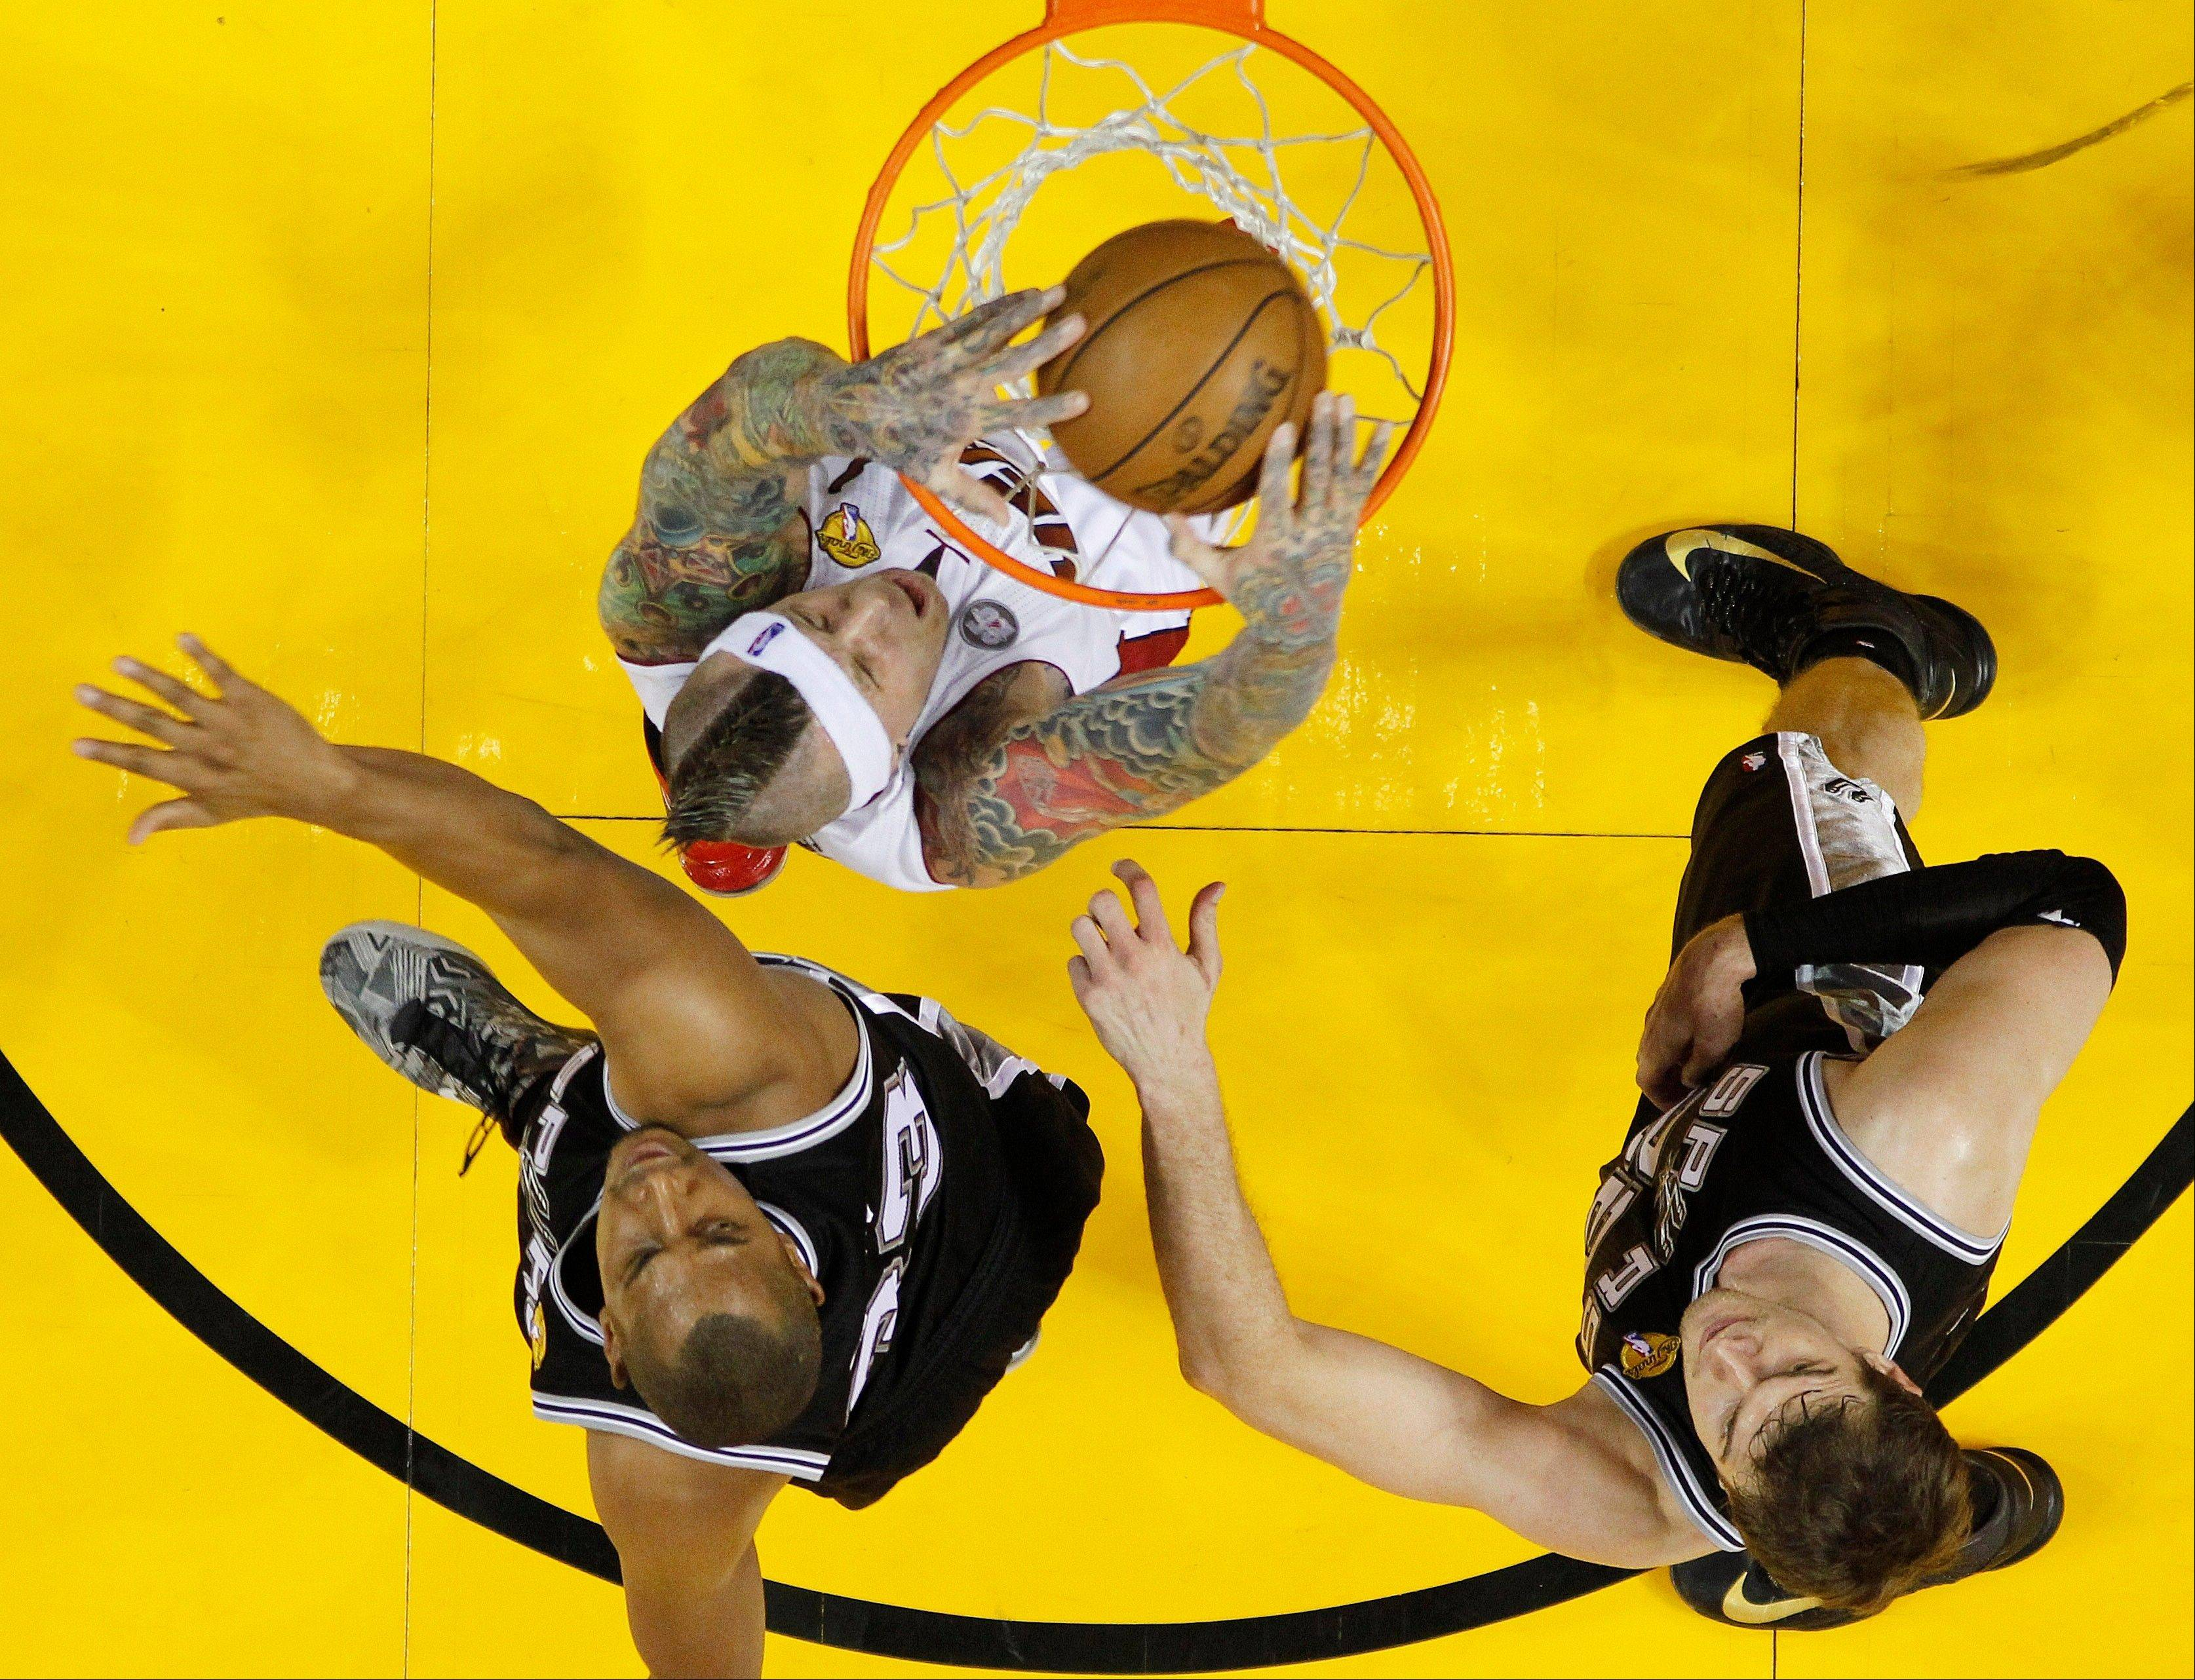 Miami Heat power forward Chris Andersen dunks the ball Sunday as San Antonio's Boris Diaw and Tiago Splitter look on during the first half of Game 2 of the NBA Finals.